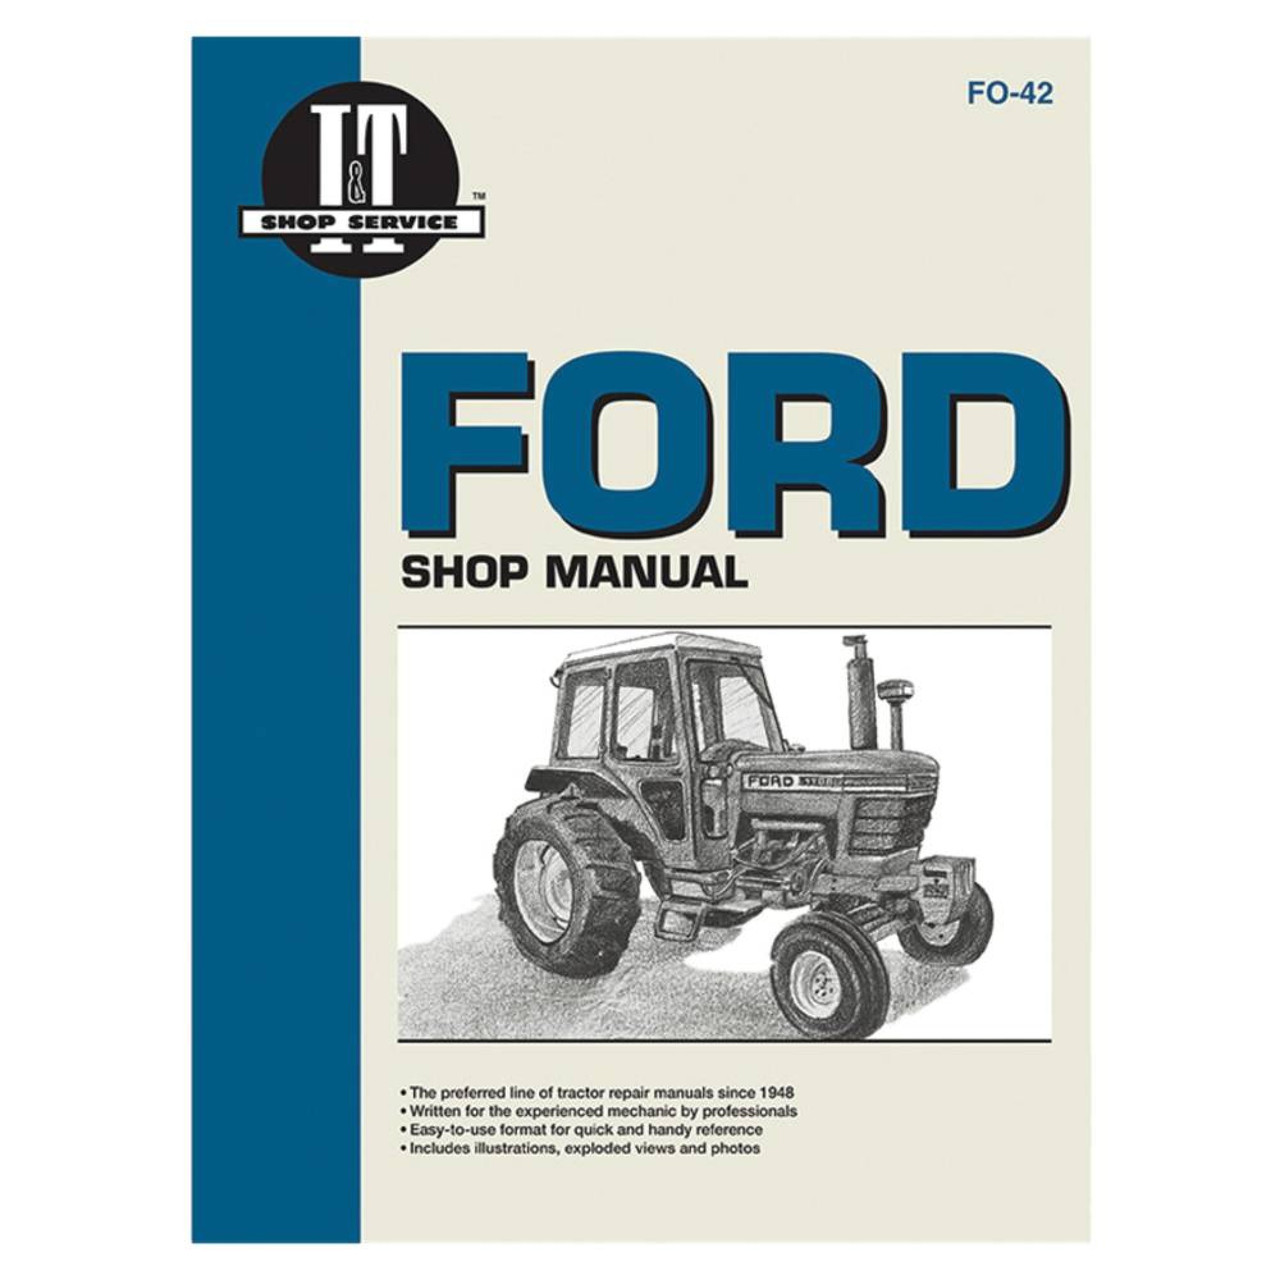 hight resolution of service manual ford new holland tractor fo 42 5100 5200 5600 5610d3d71ba2asa5oz cloudfront